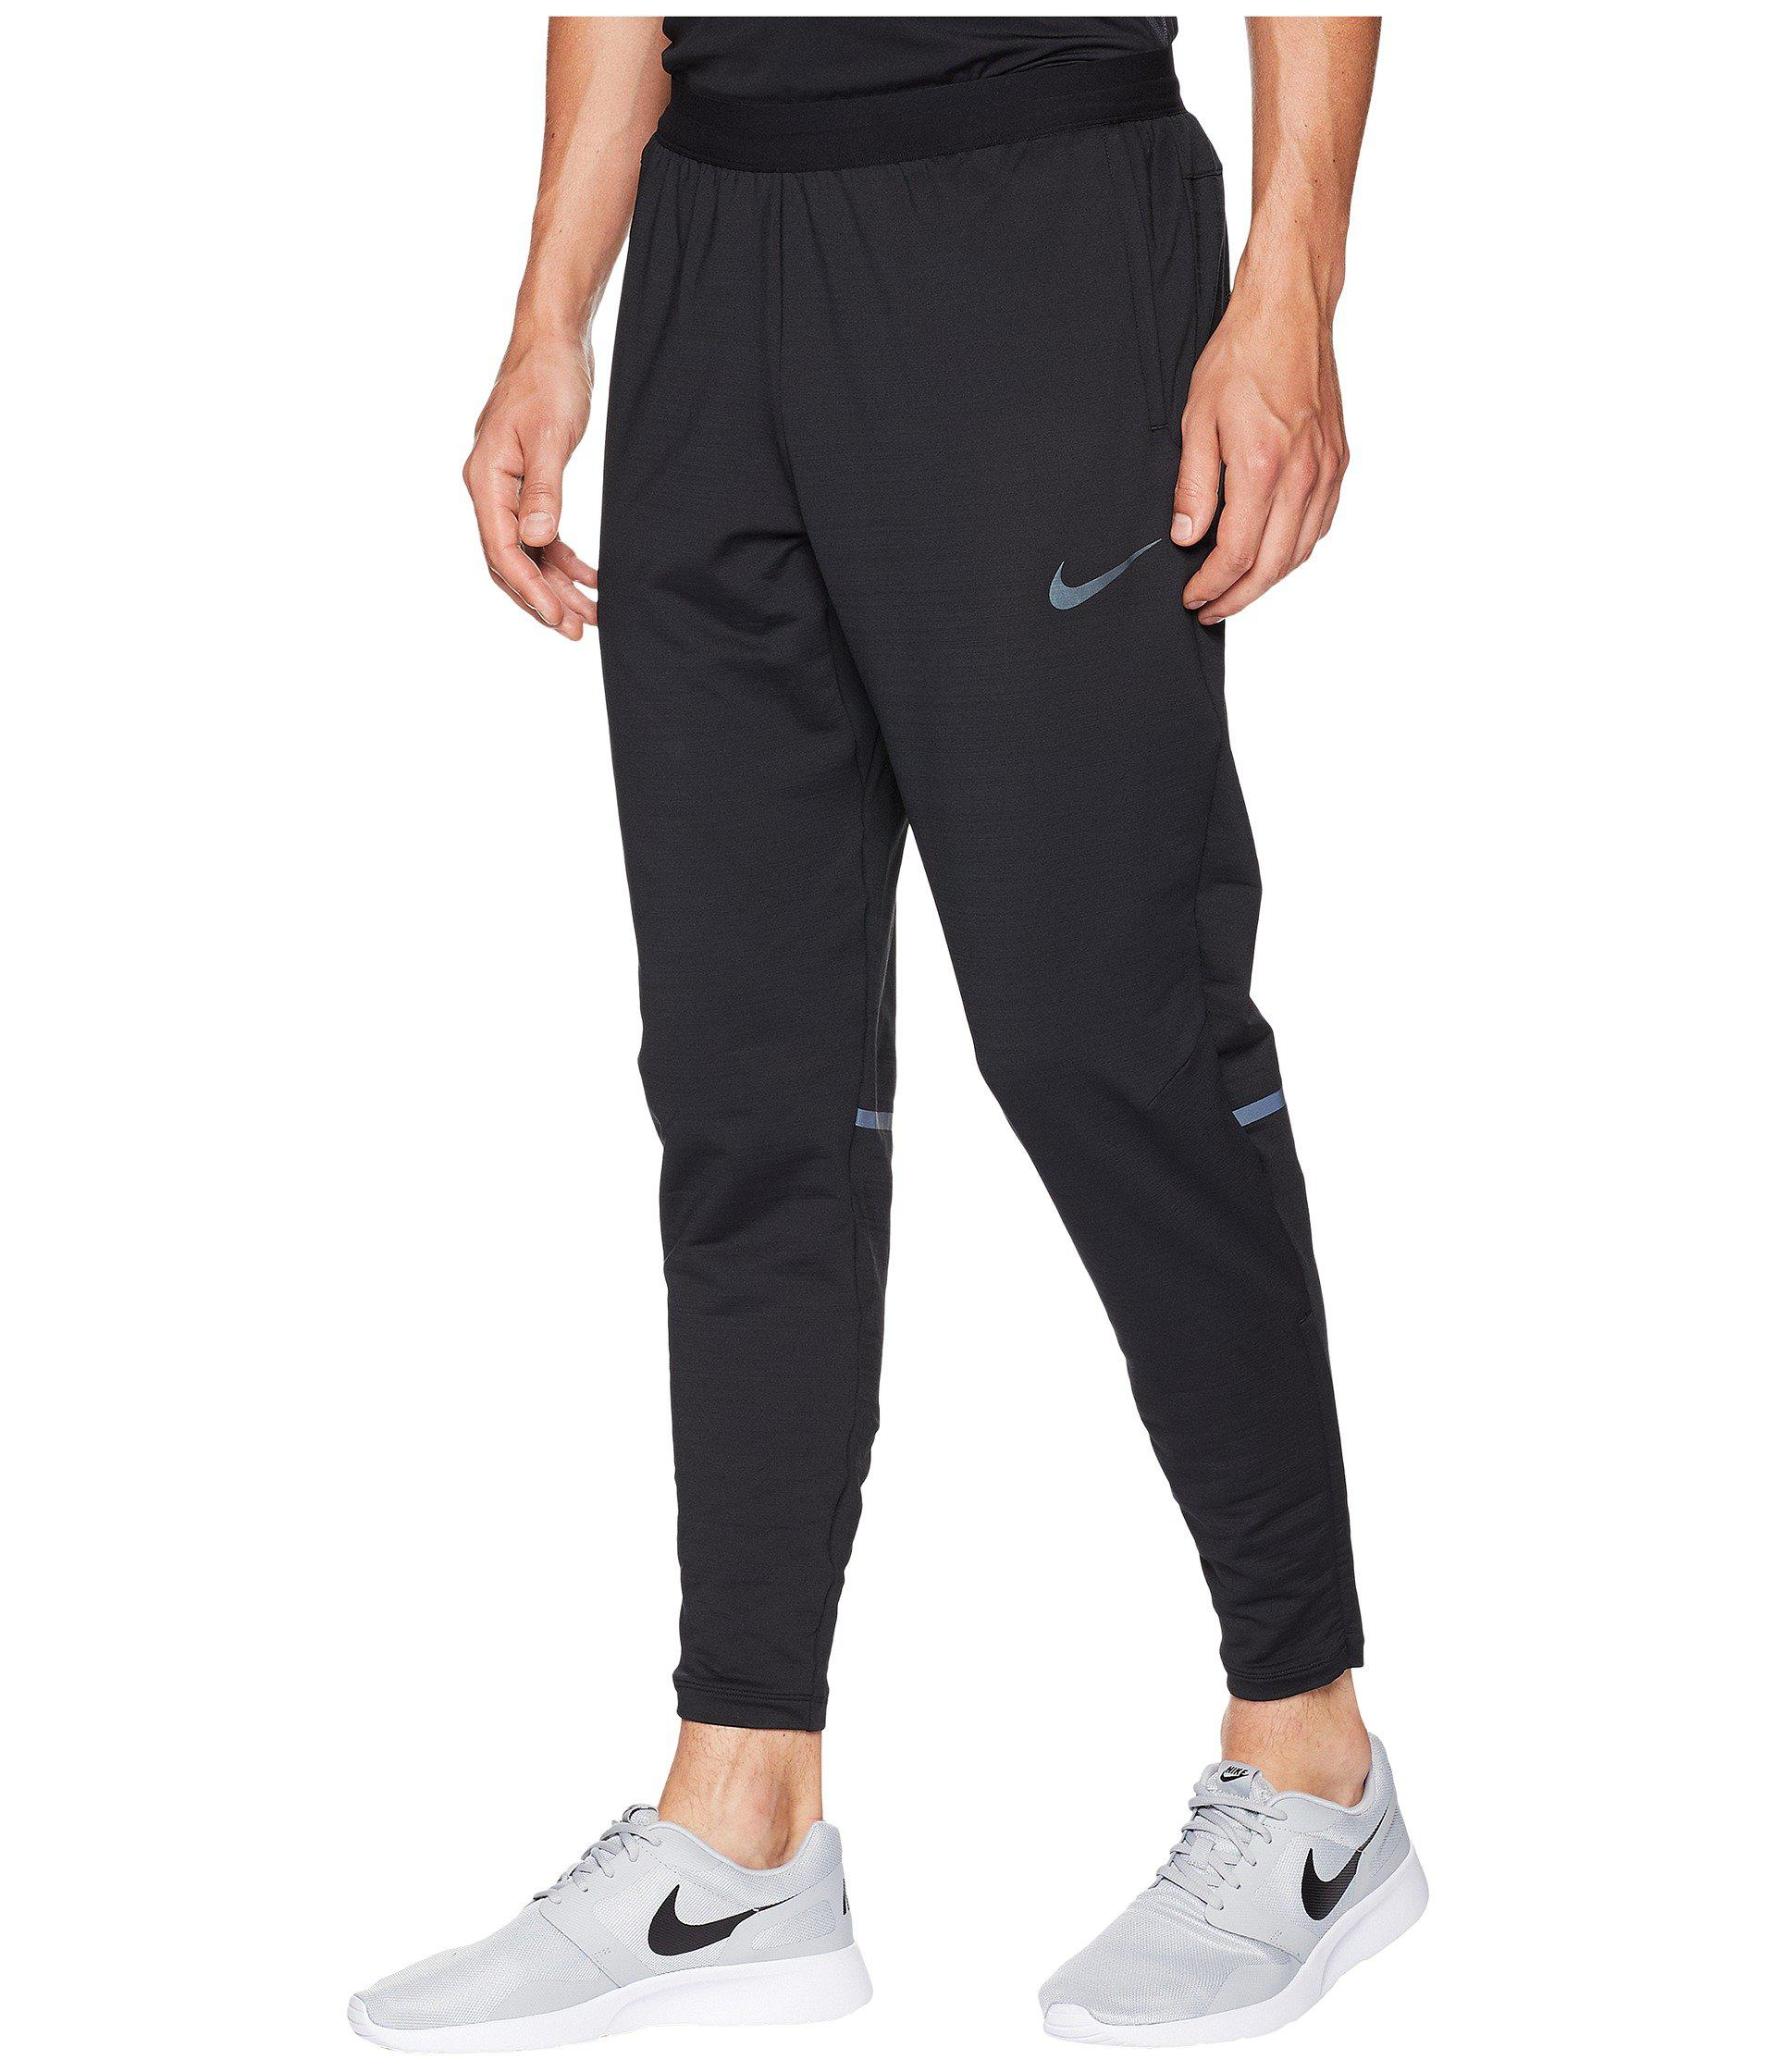 1e4356e9a06 Lyst - Nike Phenom Pants (black) Men s Casual Pants in Black for Men